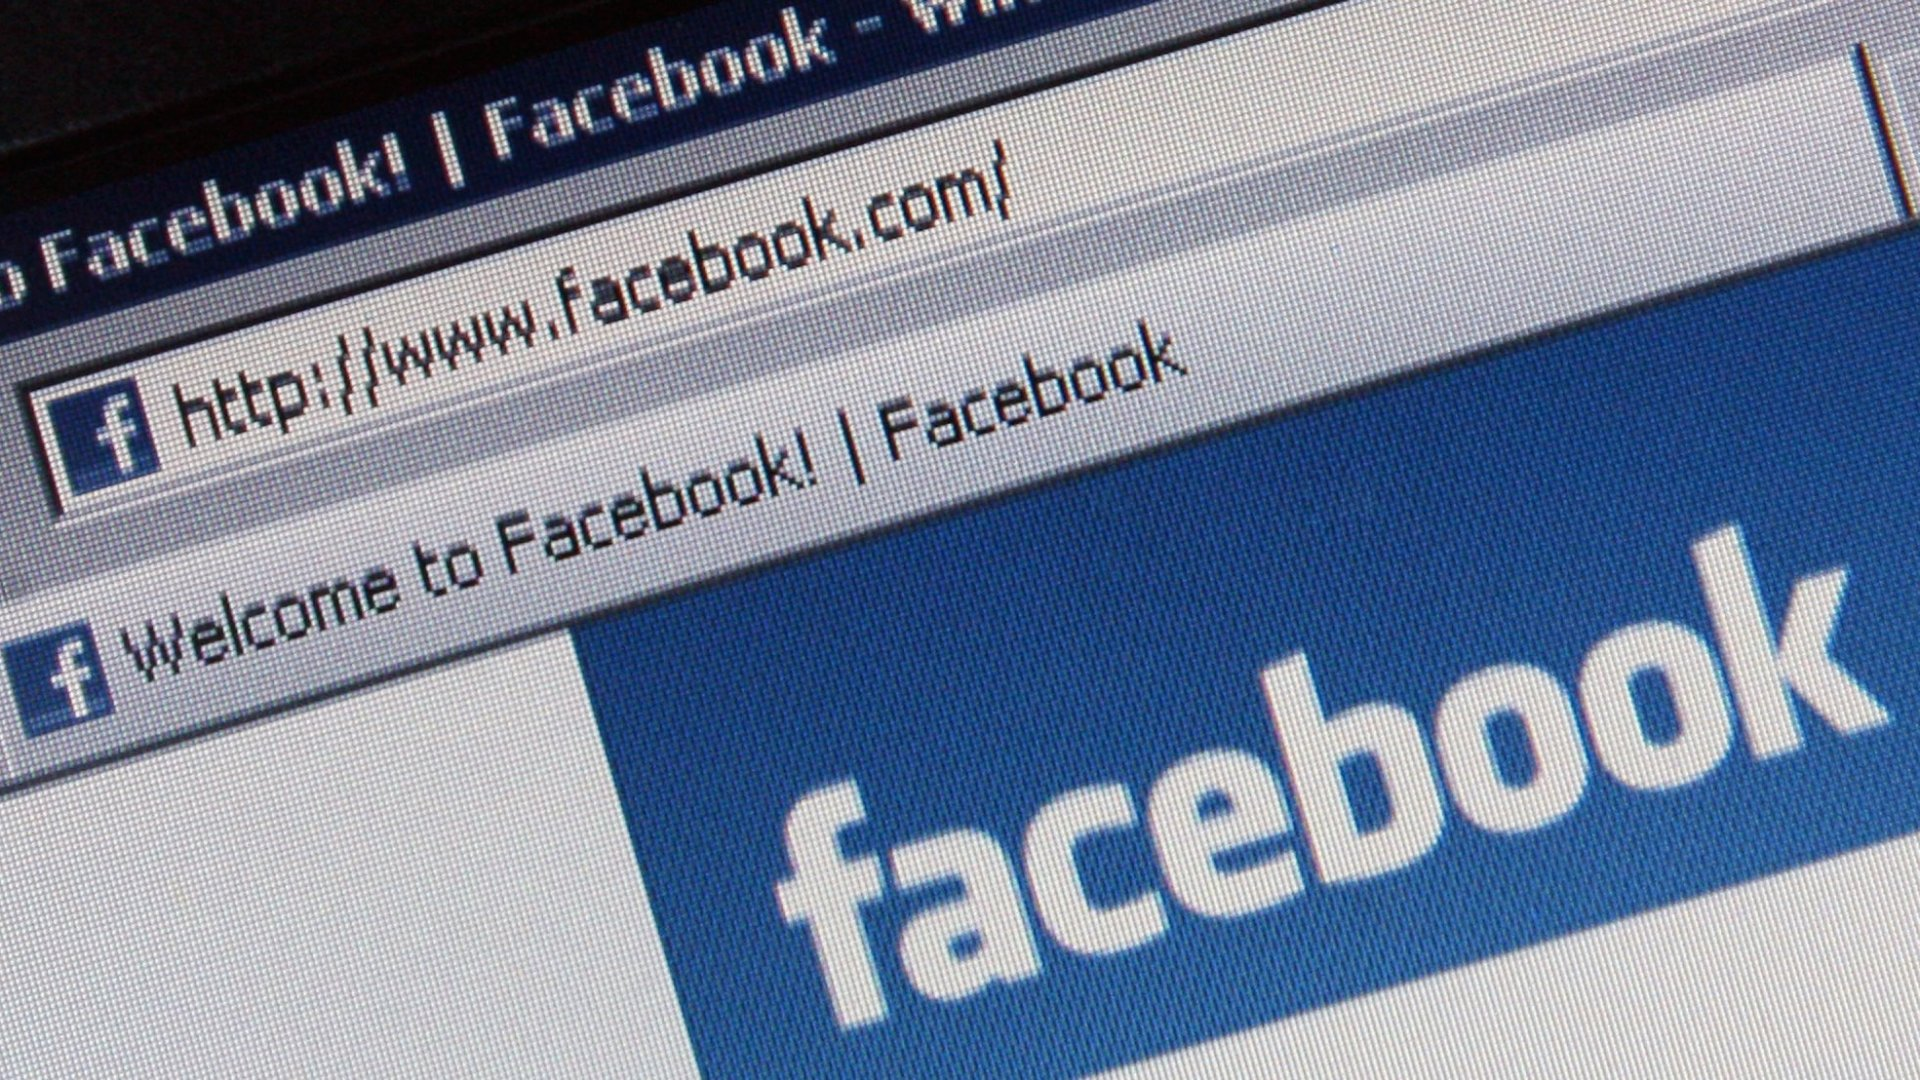 Why Do Facebook Hoaxes Often Ask You To Copy, Paste, And Modify, Rather Than To Share?